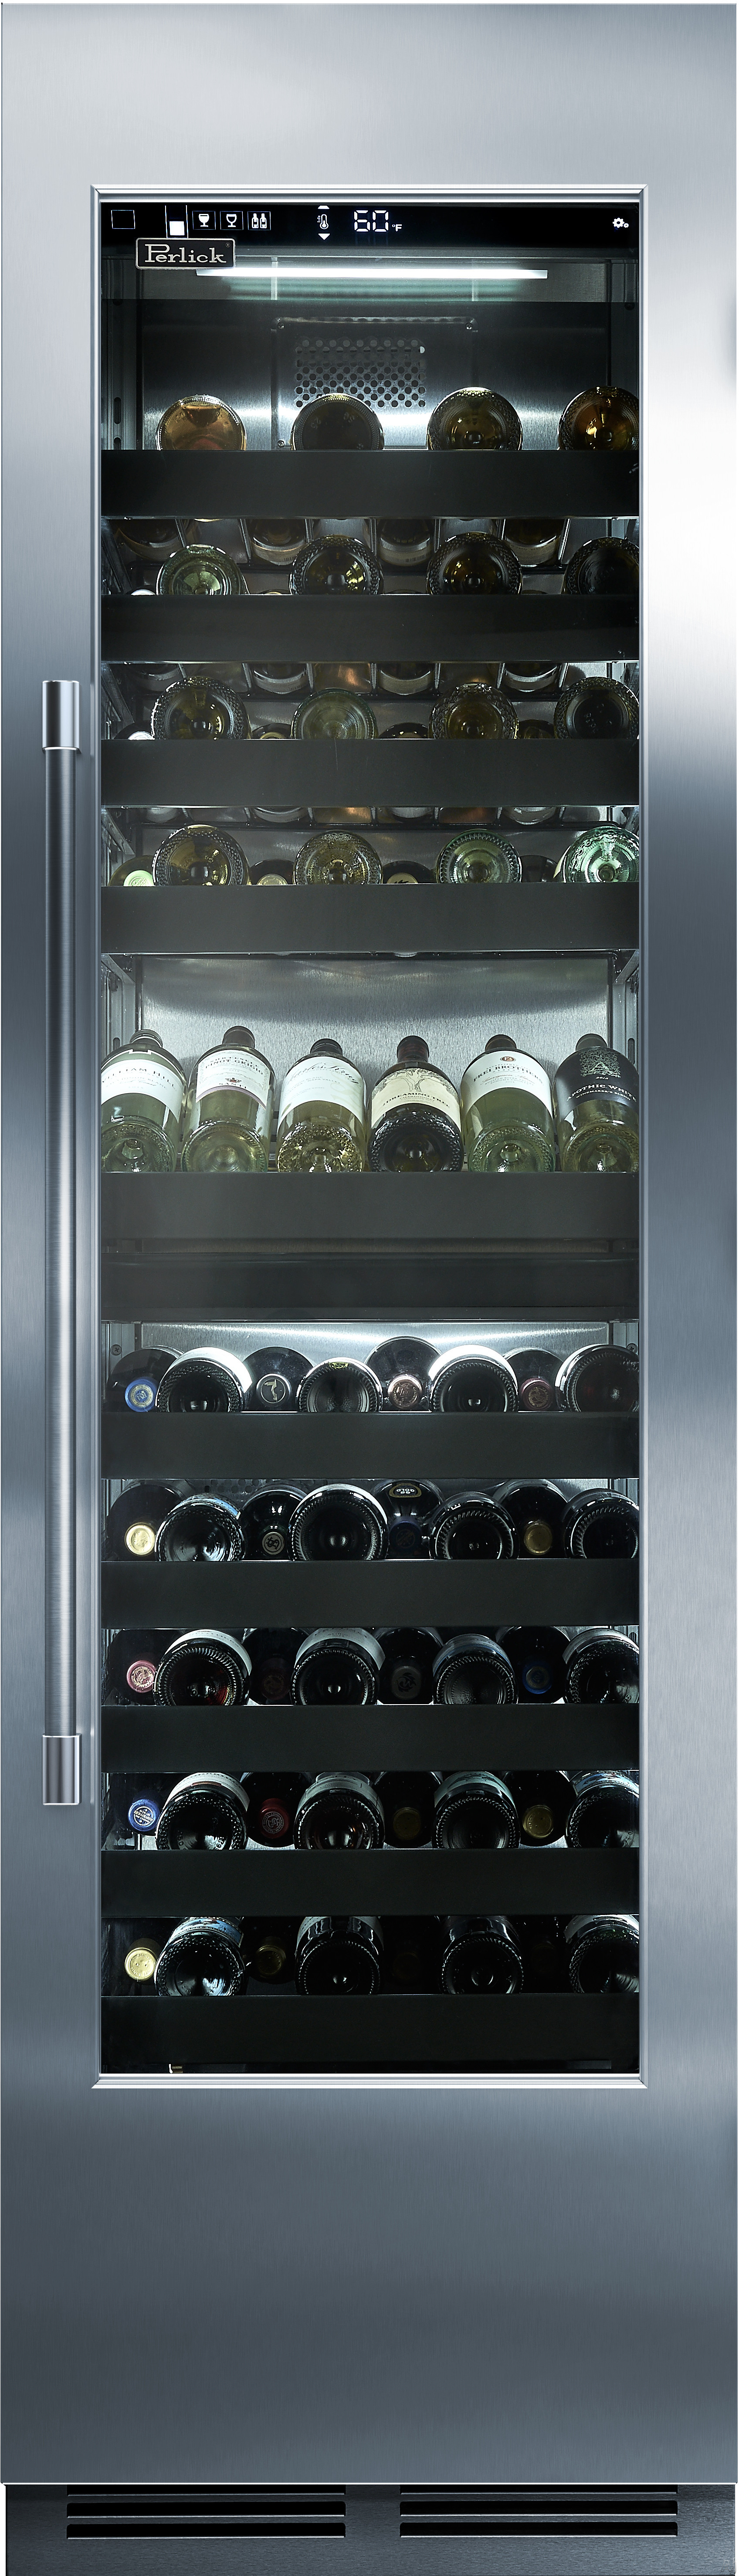 Perlick CR24D14L 24 Inch Wine Reserve with 86 Bottle Capacity, Dual Temperature Zones, Convertible Display Shelf, Touch-Screen Controls, Glass Pane Ready and Theatre Lighting: Left Hinge